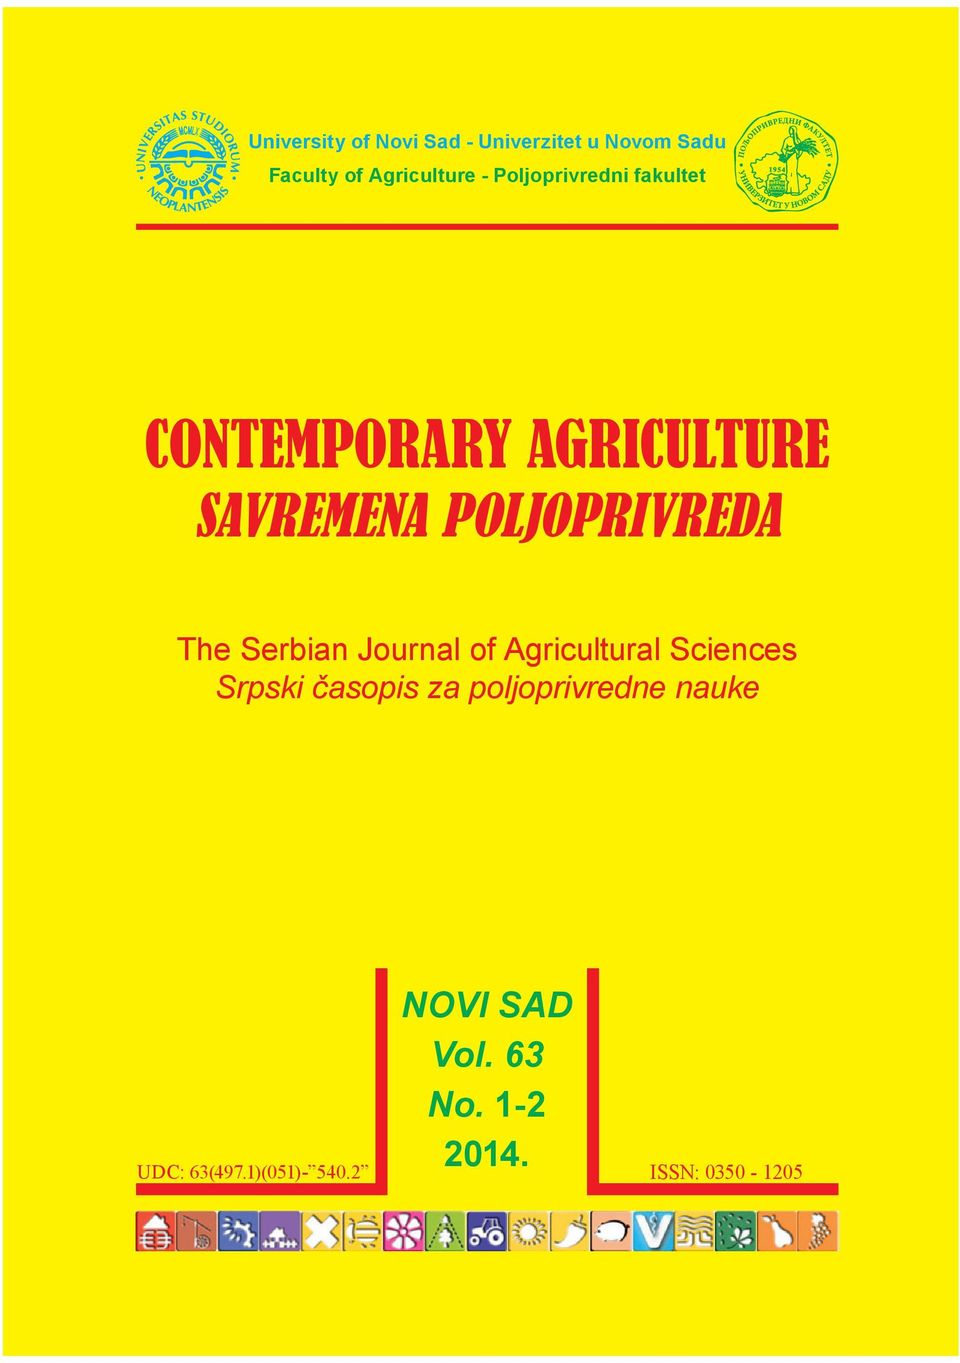 The Serbian Journal of Agricultural Sciences Srpski časopis za